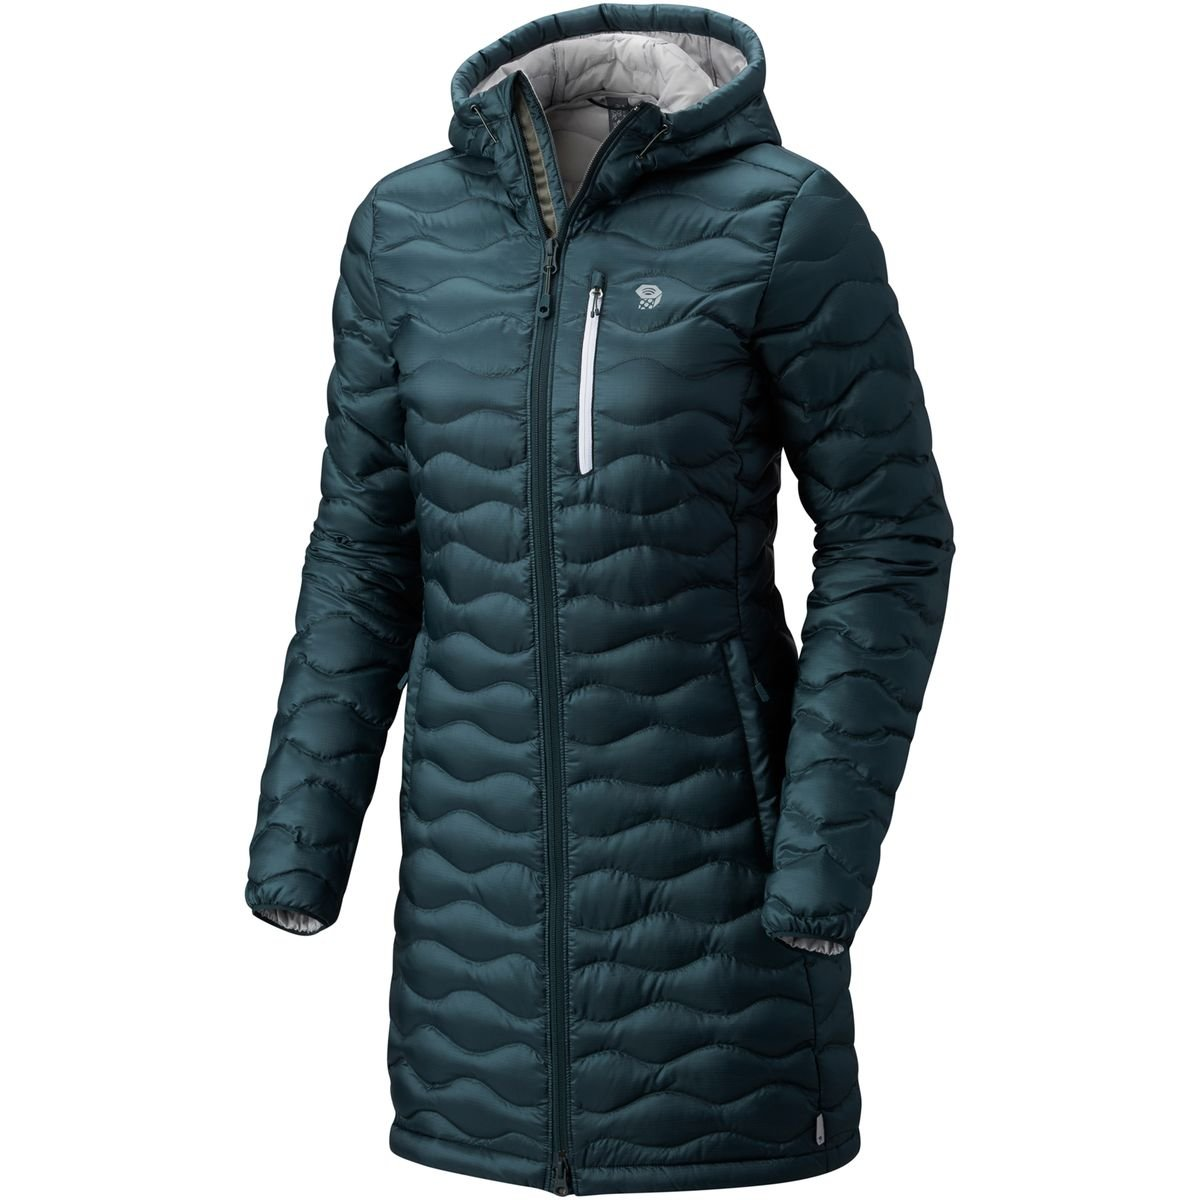 bluee Spruce Mountain Hardwear Women's Nitrous Hooded Down Parka